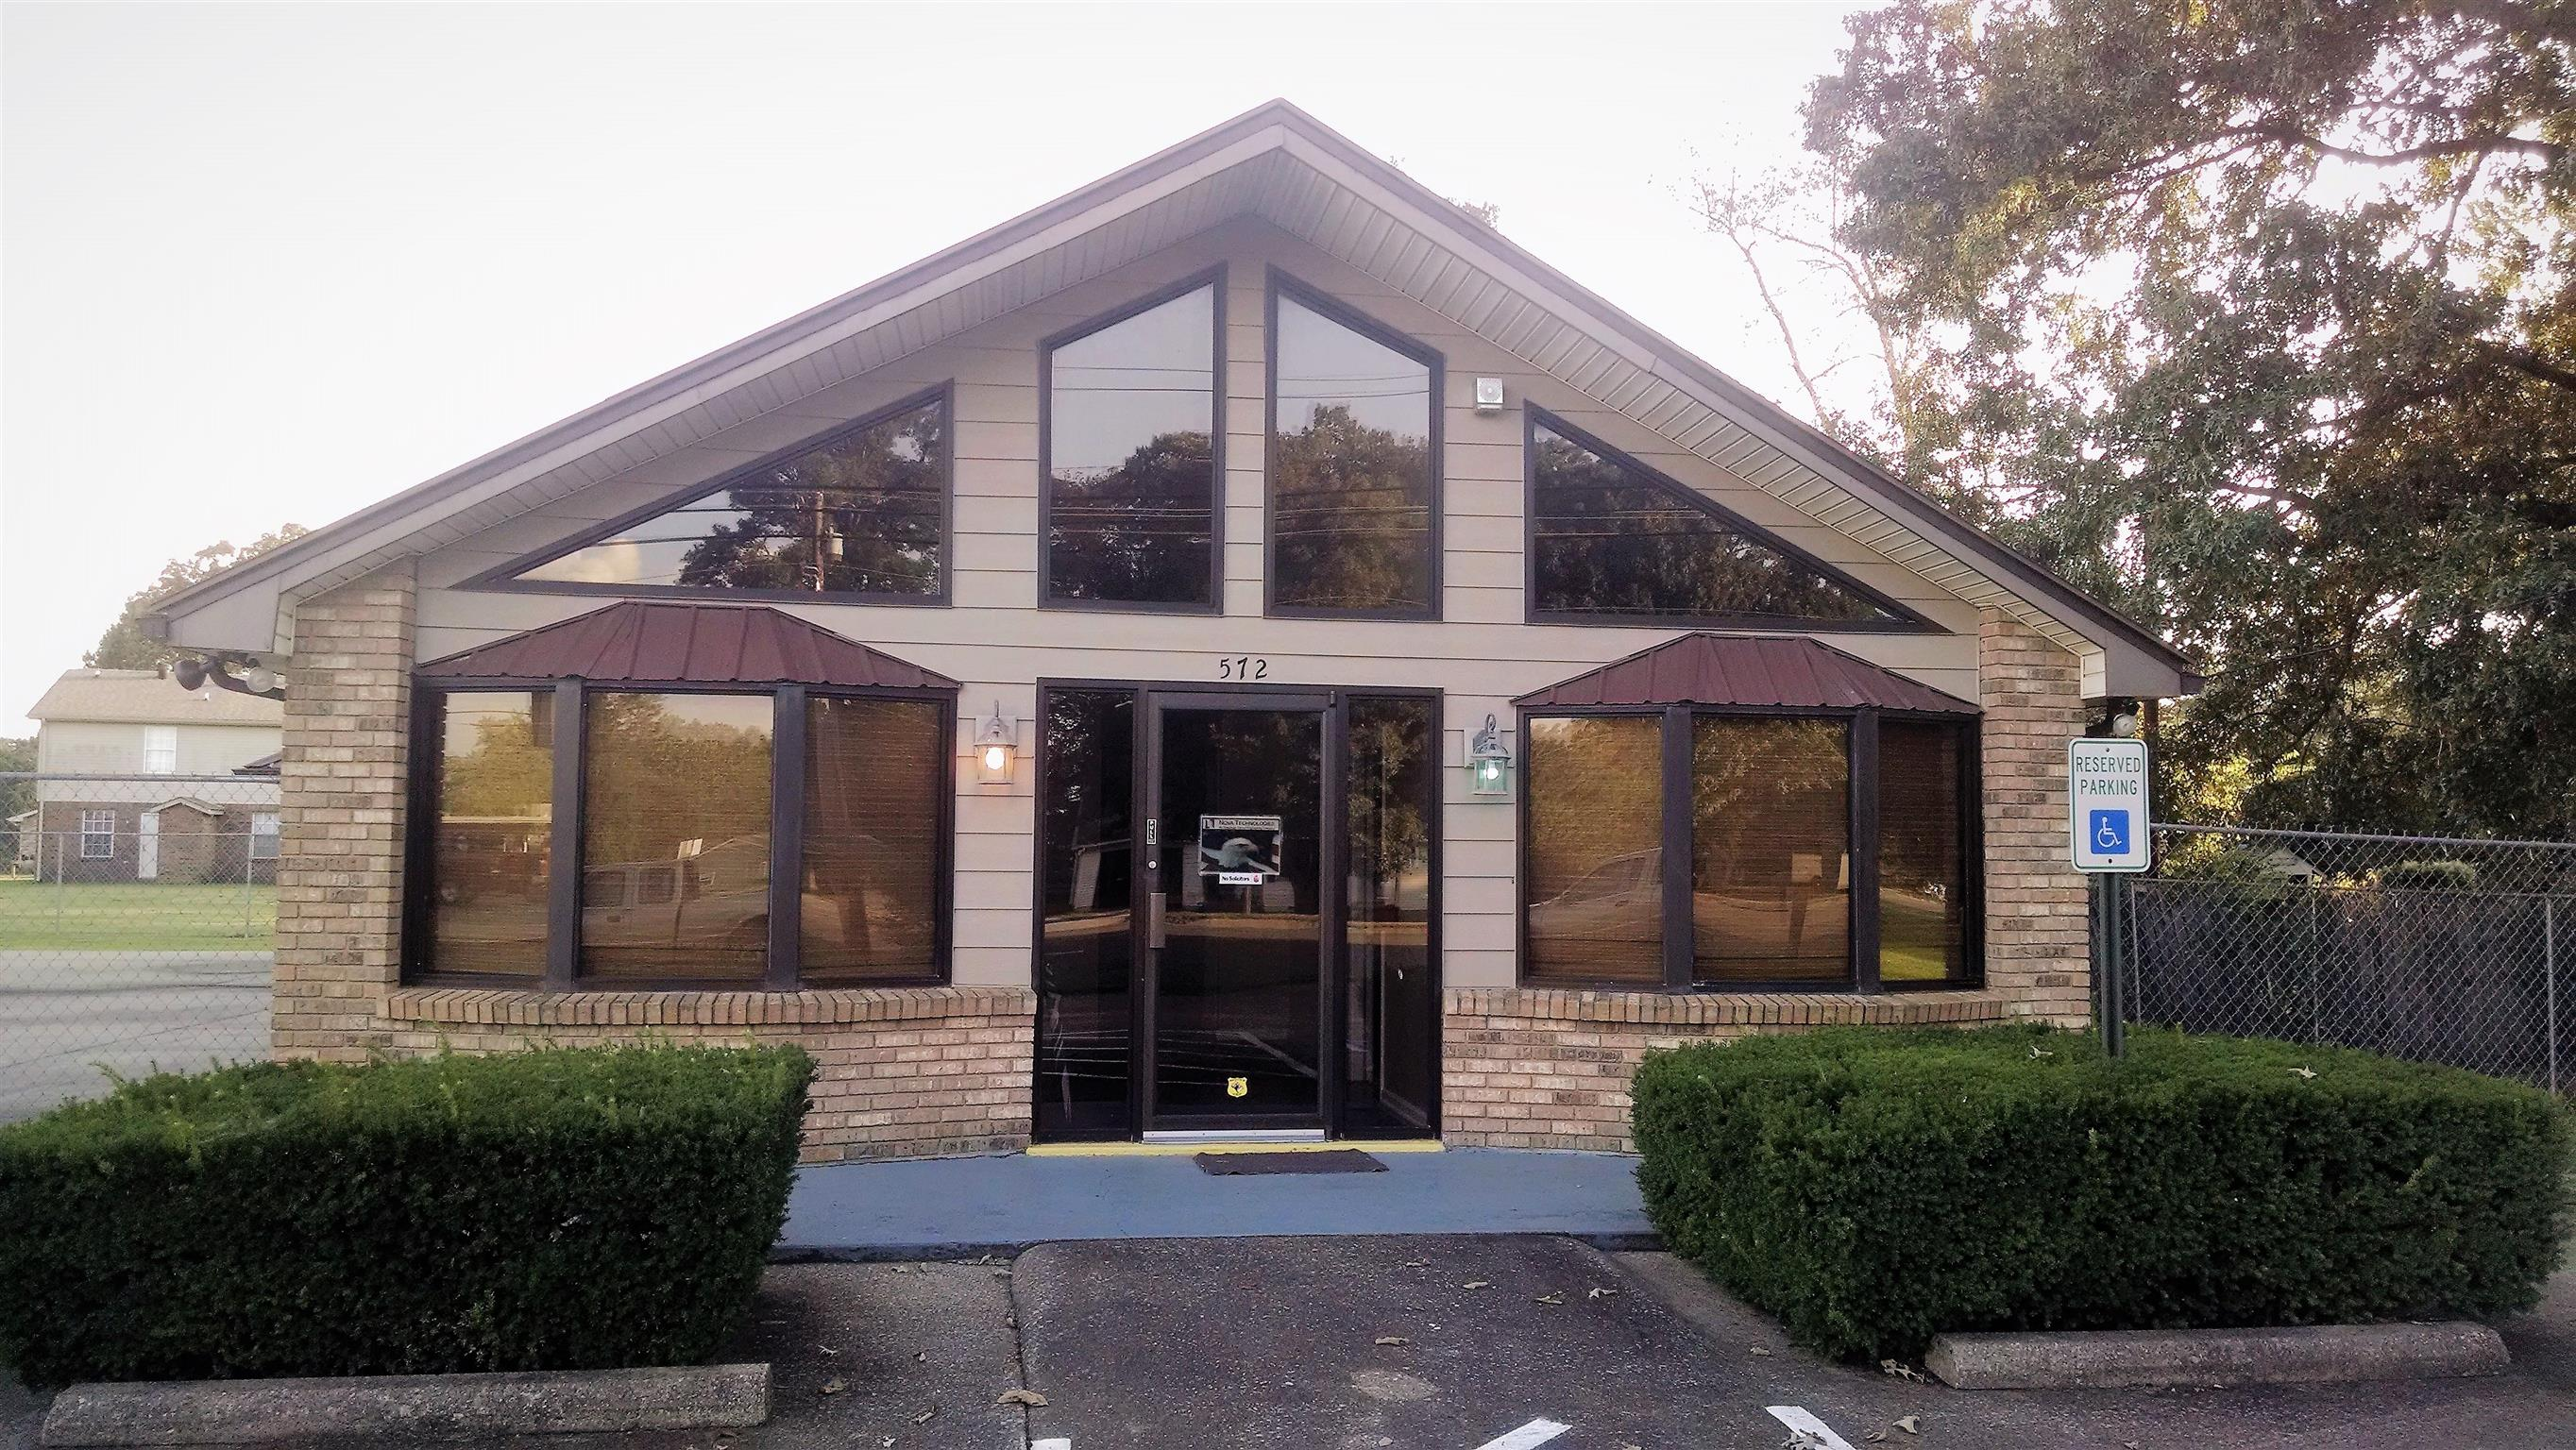 Excellent quality renovated office building in high traffic area. Space includes 6 large offices, 1 conference room, 1 very large class/conference room, plenty of storage, 2 bathrooms, 1 shower, kitchenette and break area, & large fenced in concrete patio and grassy area. Wired for HDMI ethernet and ready to occupy!